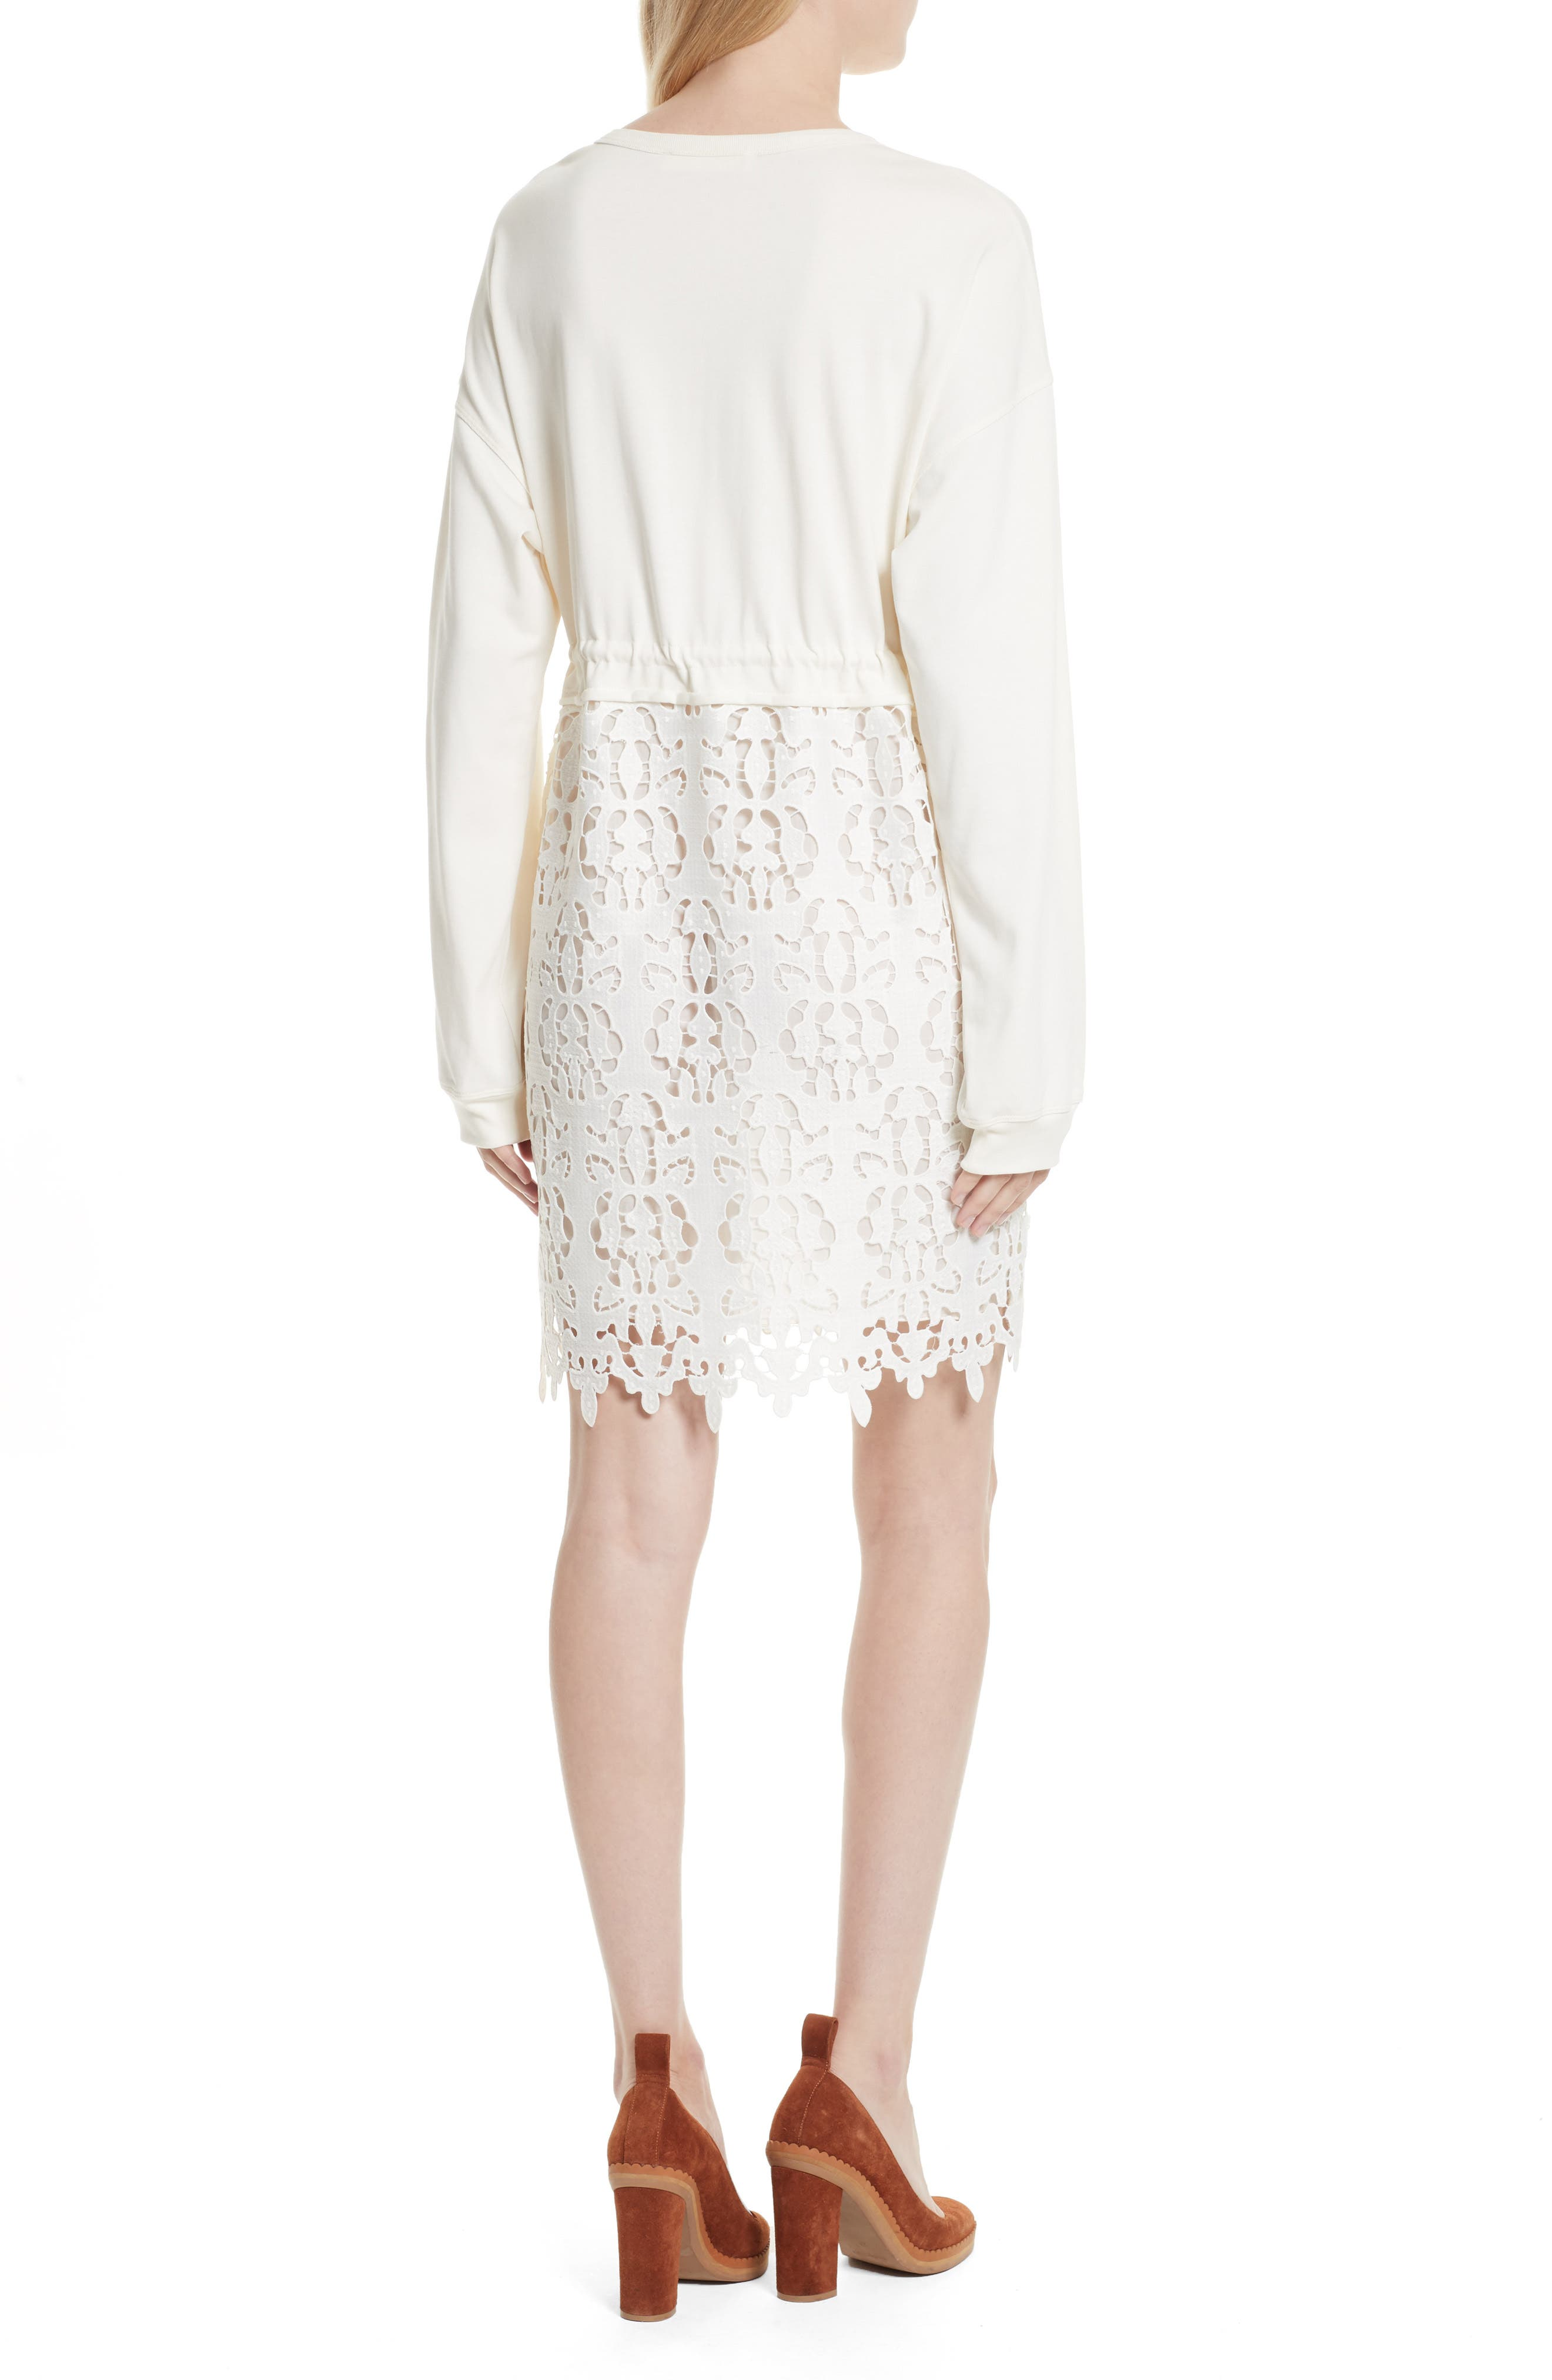 SEE BY CHLOÉ,                             Lace Skirt Sweatshirt Dress,                             Alternate thumbnail 2, color,                             101